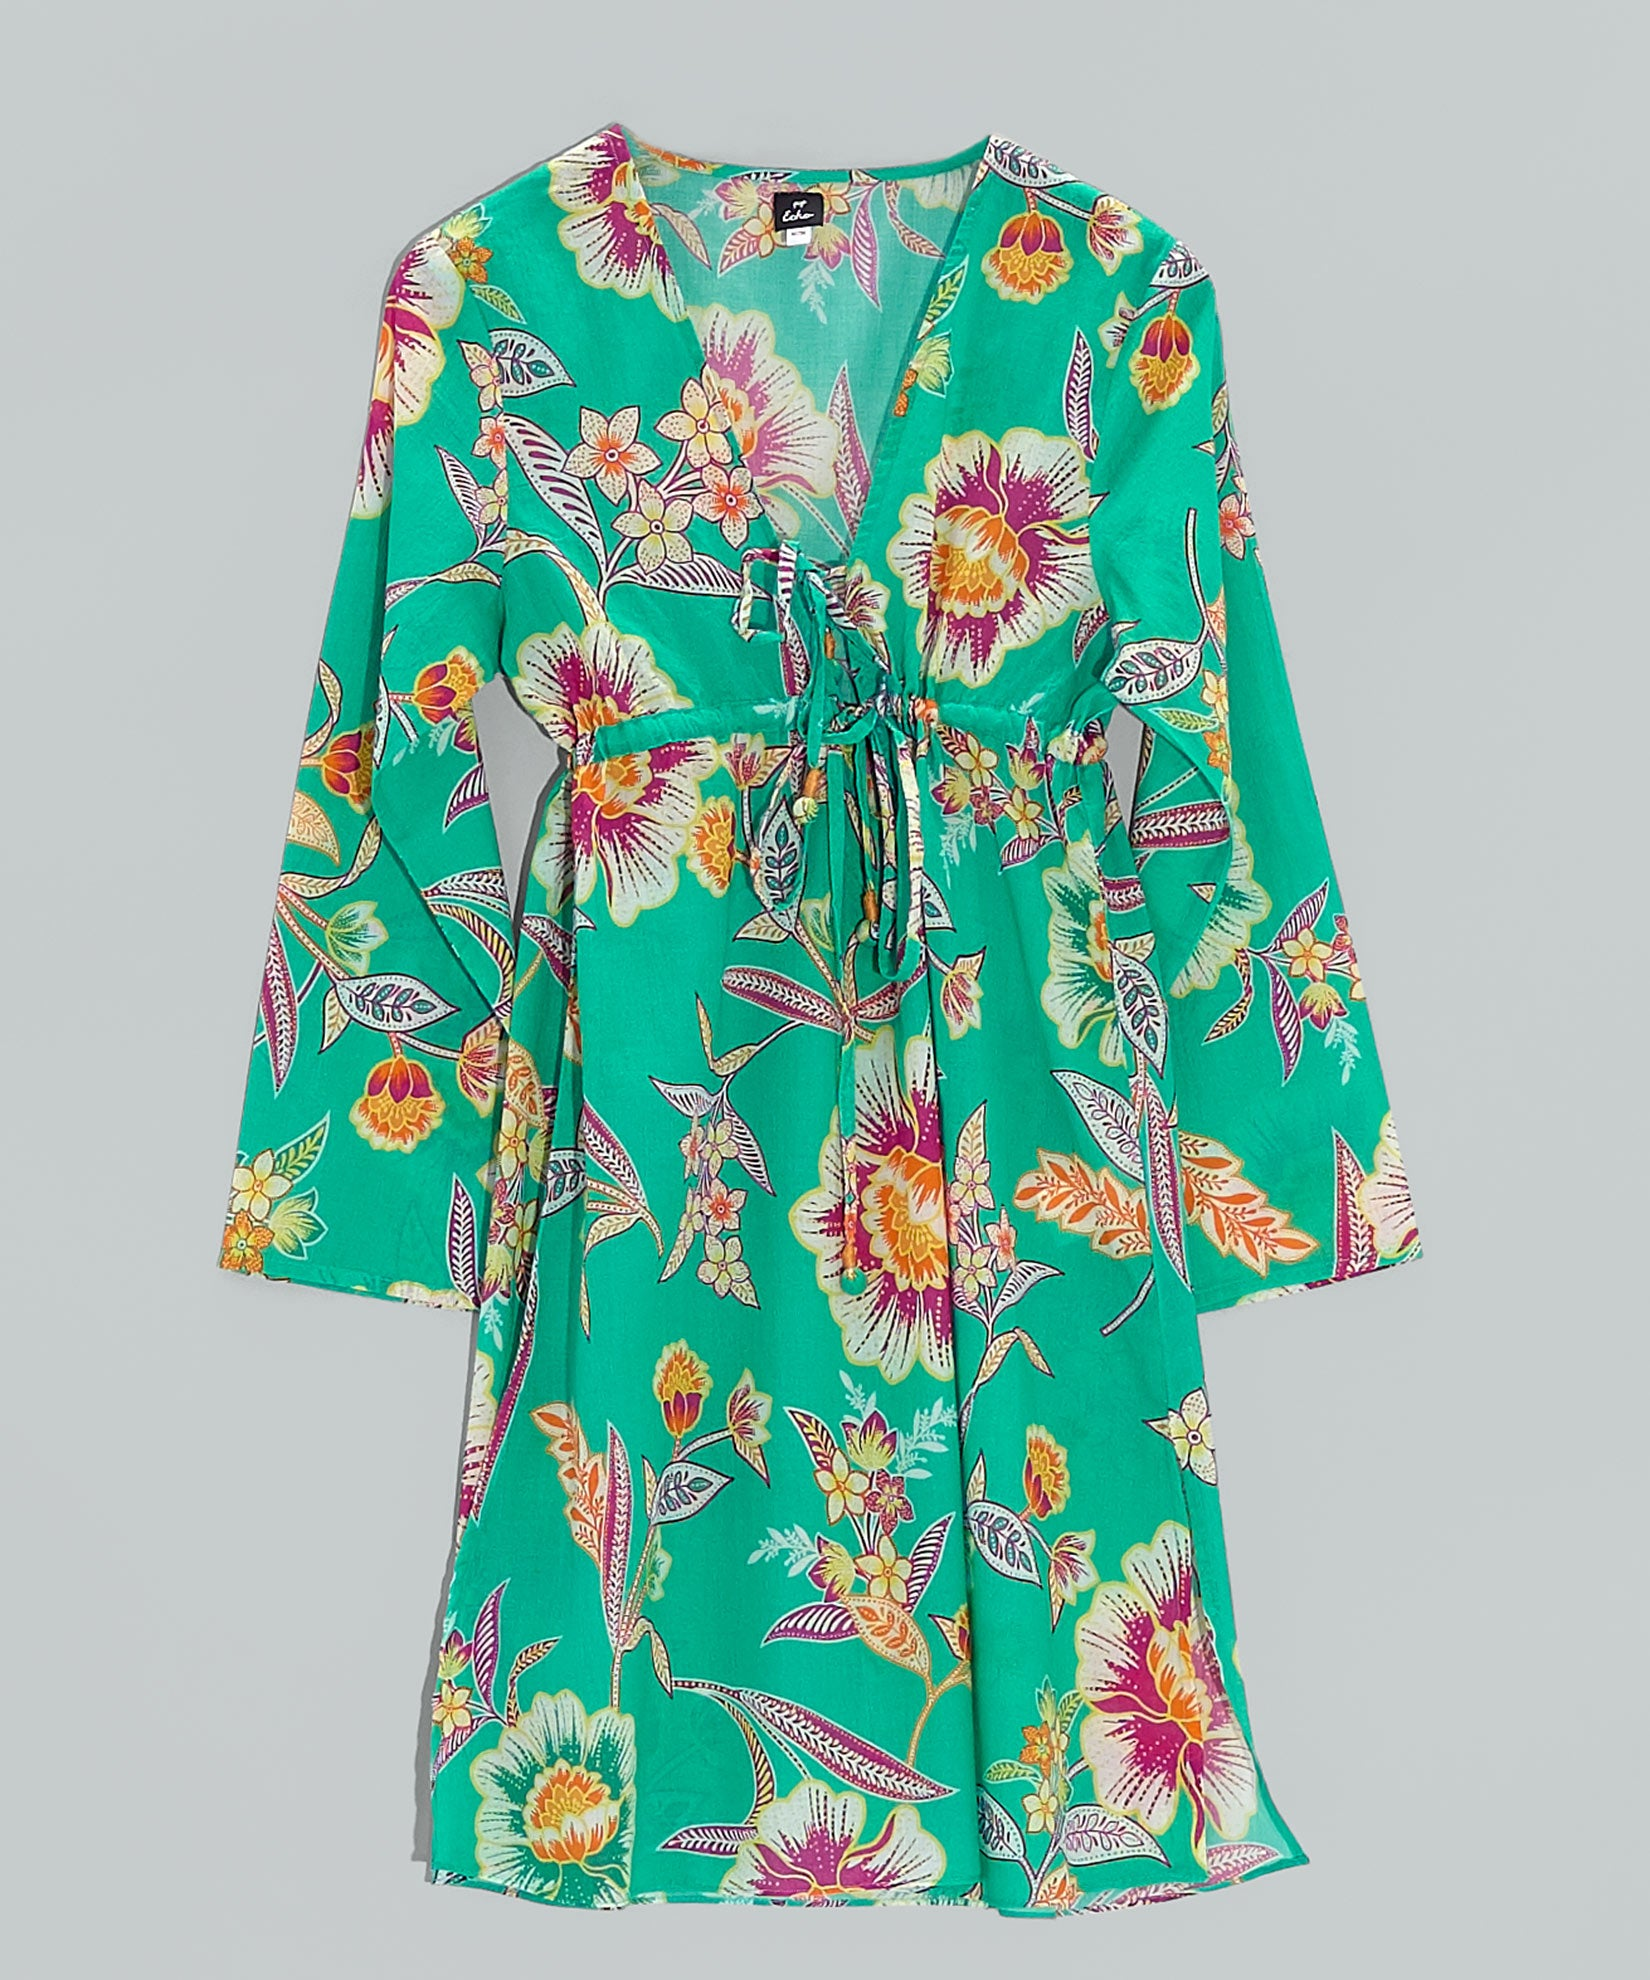 Aqua - Tropical Floral Tunic Dress